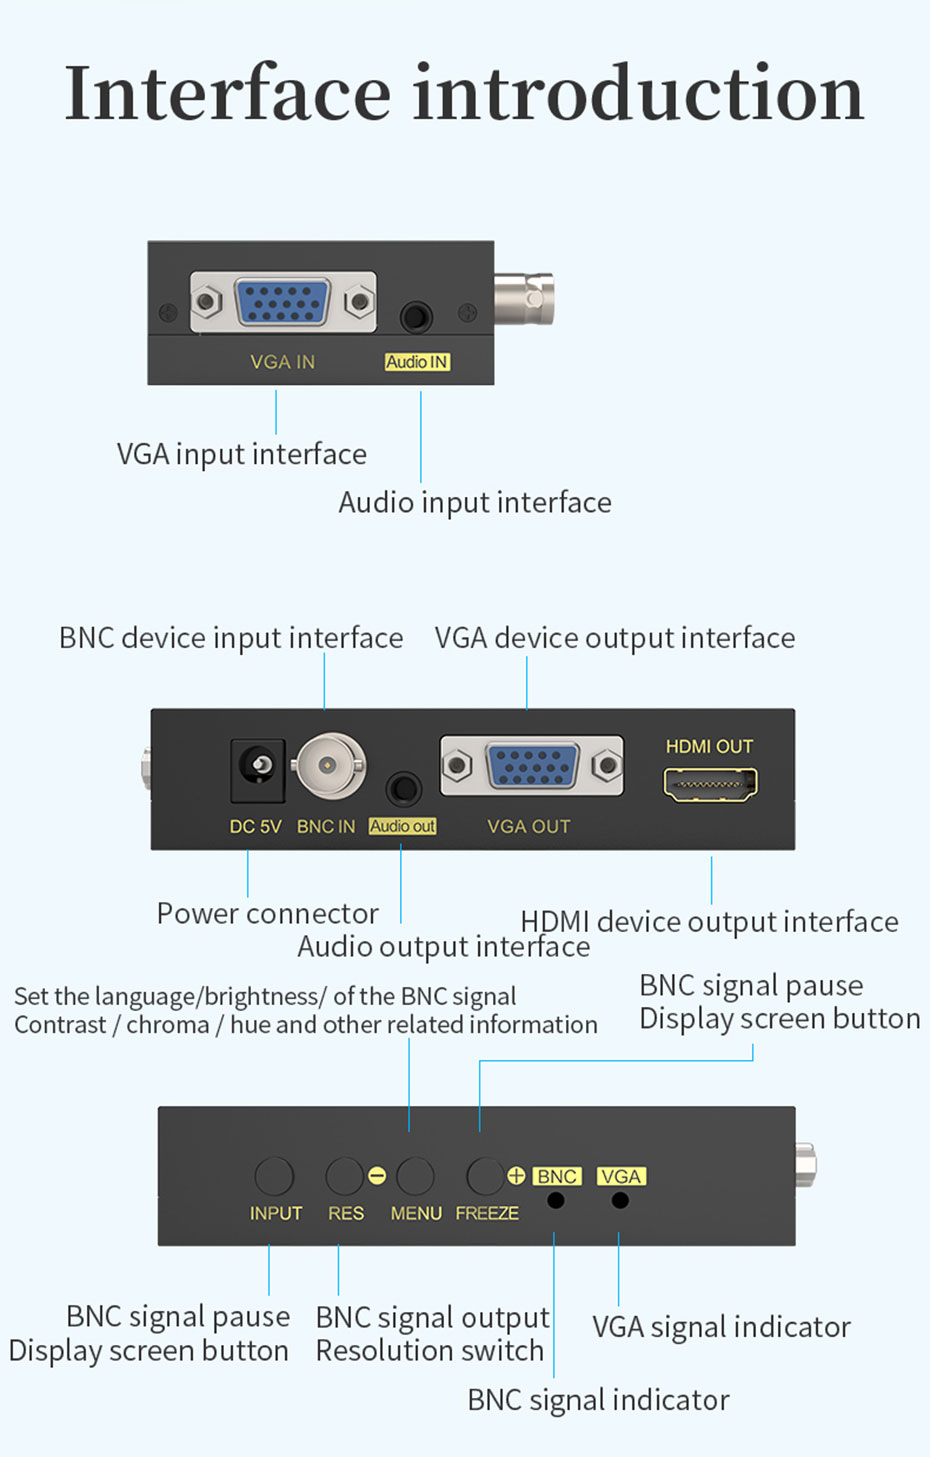 VGA / BNC to VGA / HDMI converter 1804 interface description